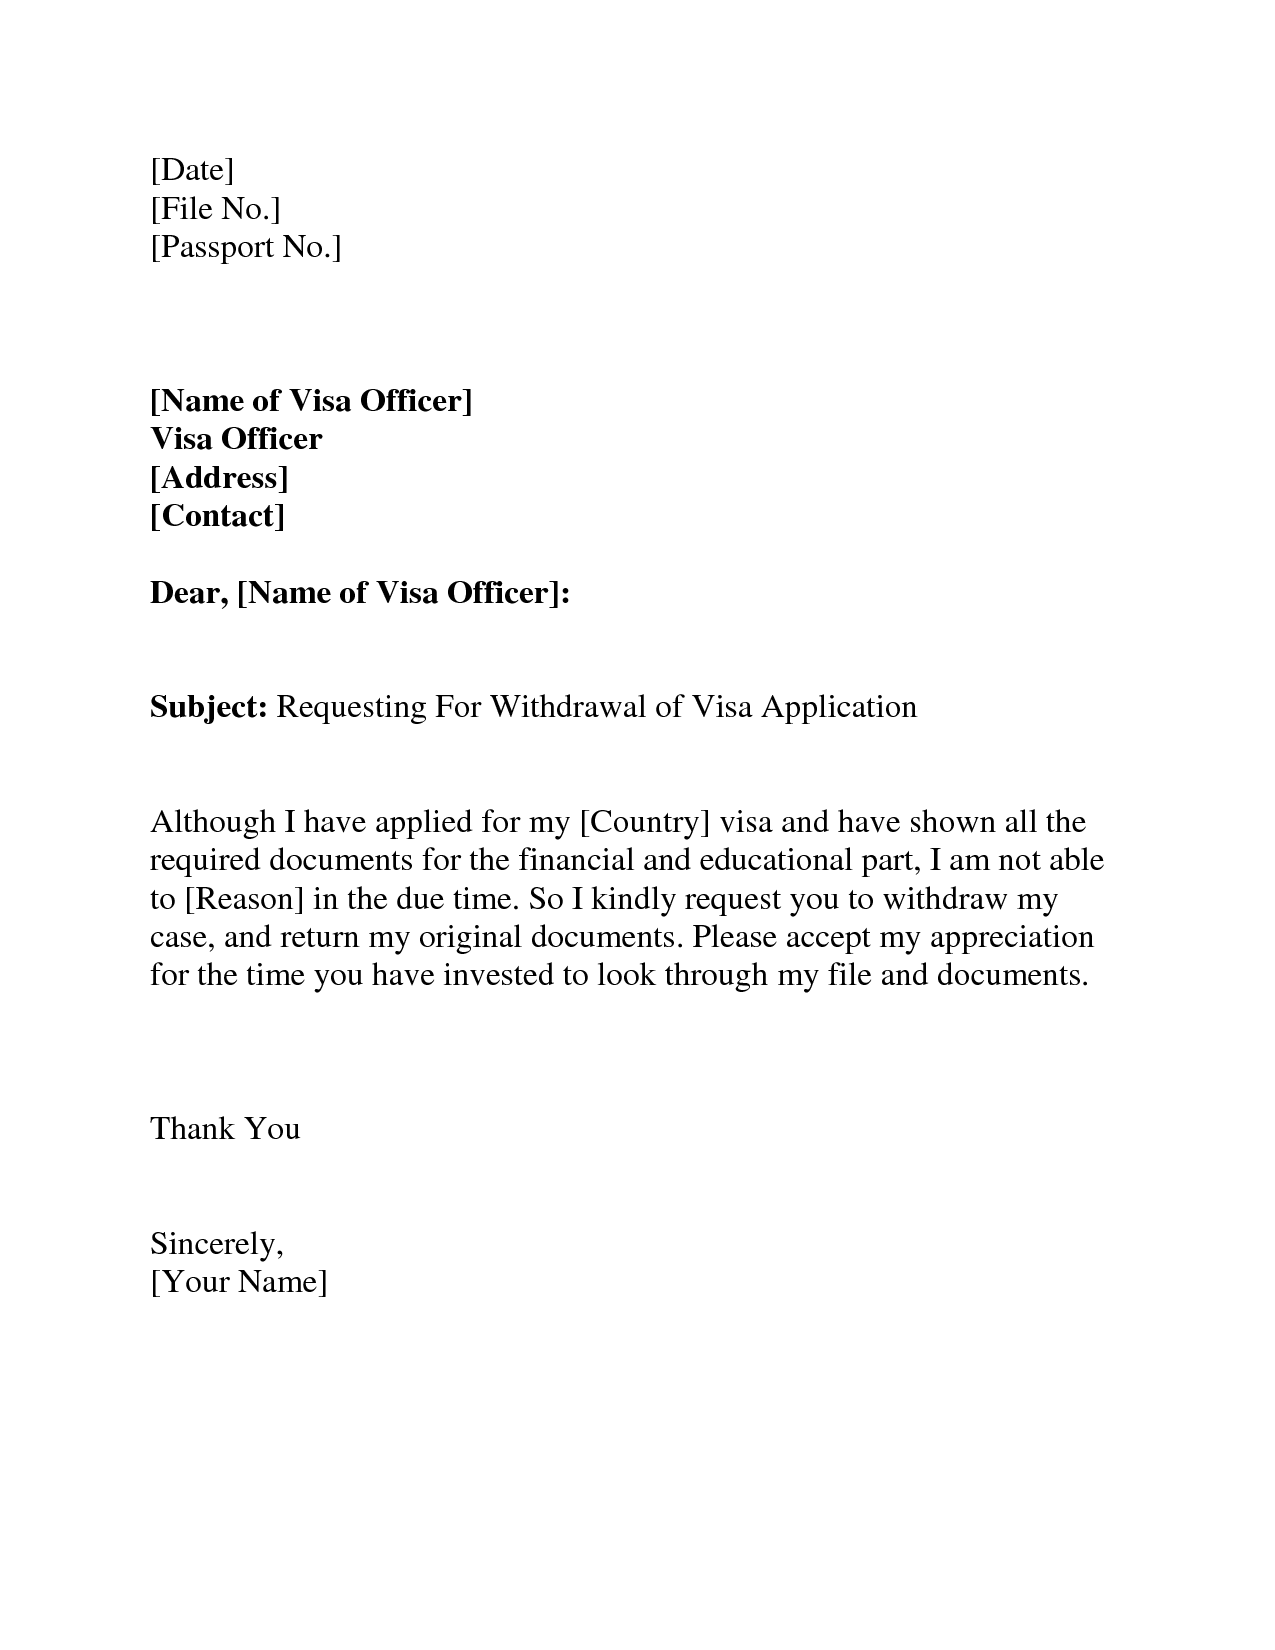 Visa withdrawal letter request letter format letter and emailvisa visa withdrawal letter request letter format letter and emailvisa invitation letter to a friend example application letter sample spiritdancerdesigns Images